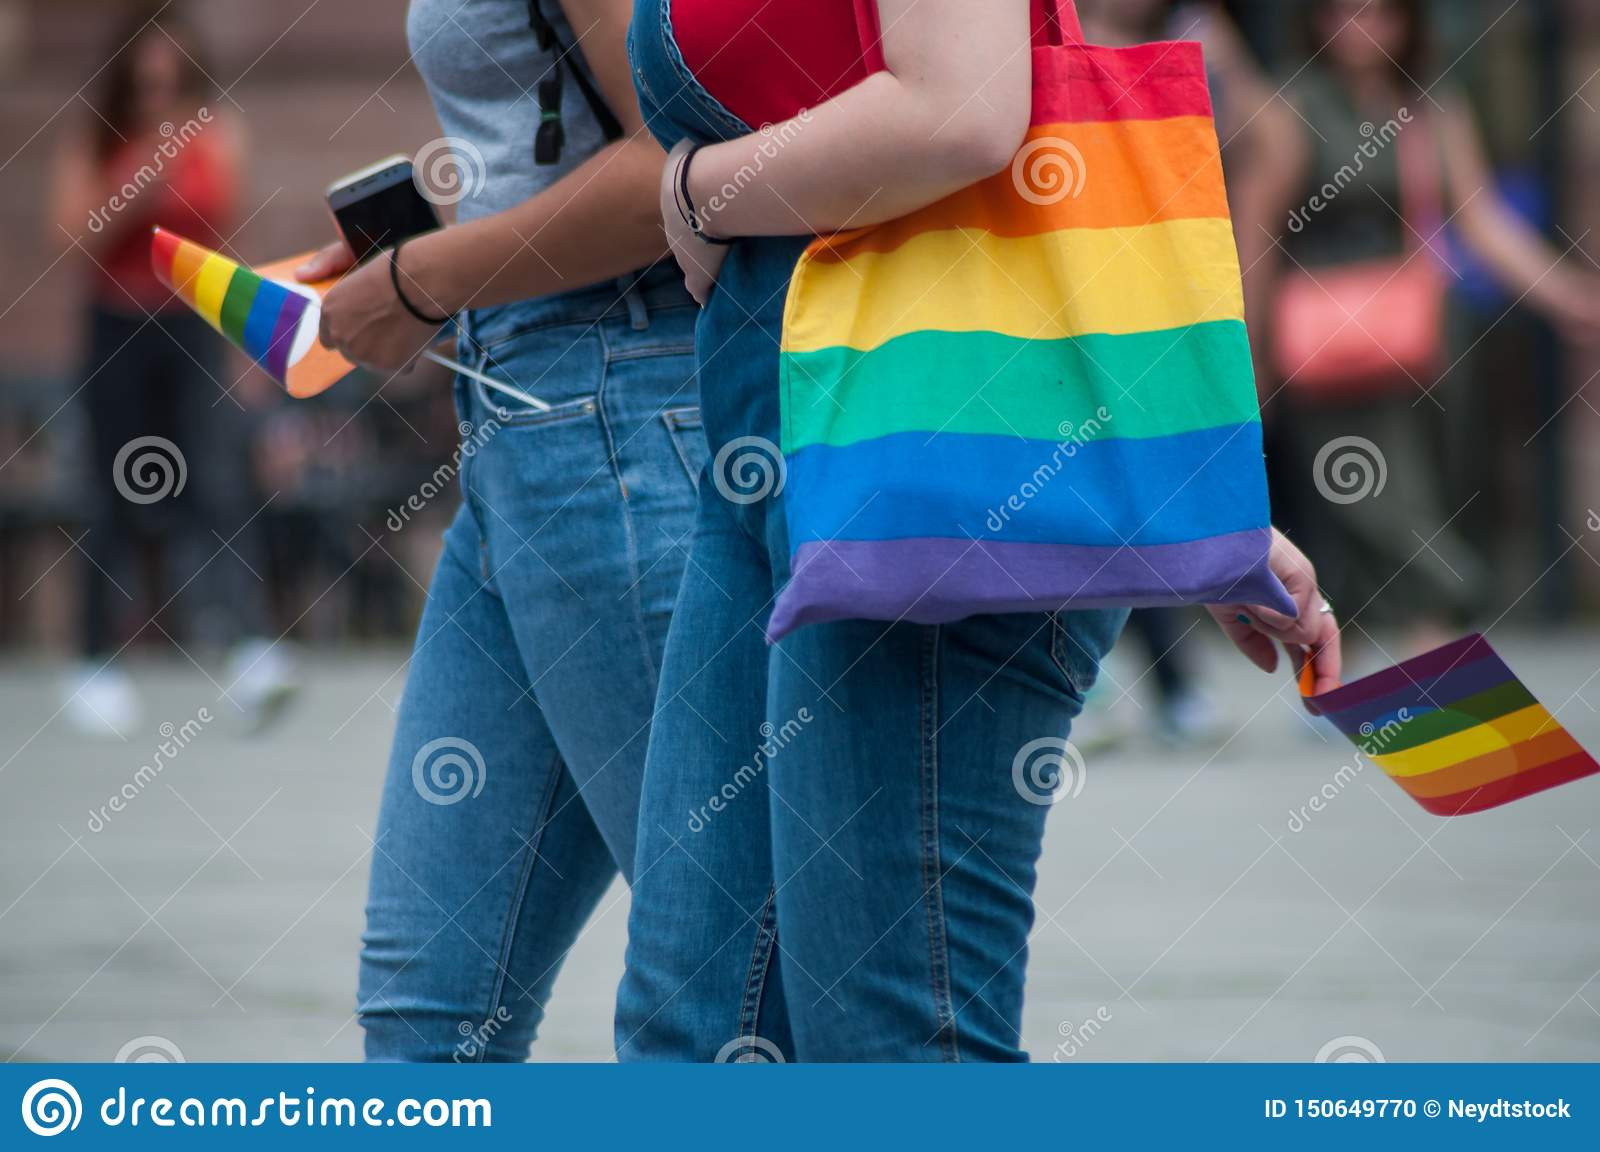 Lesbian girls walking in the street with rainbow bag and rainbow flags before the gay pride